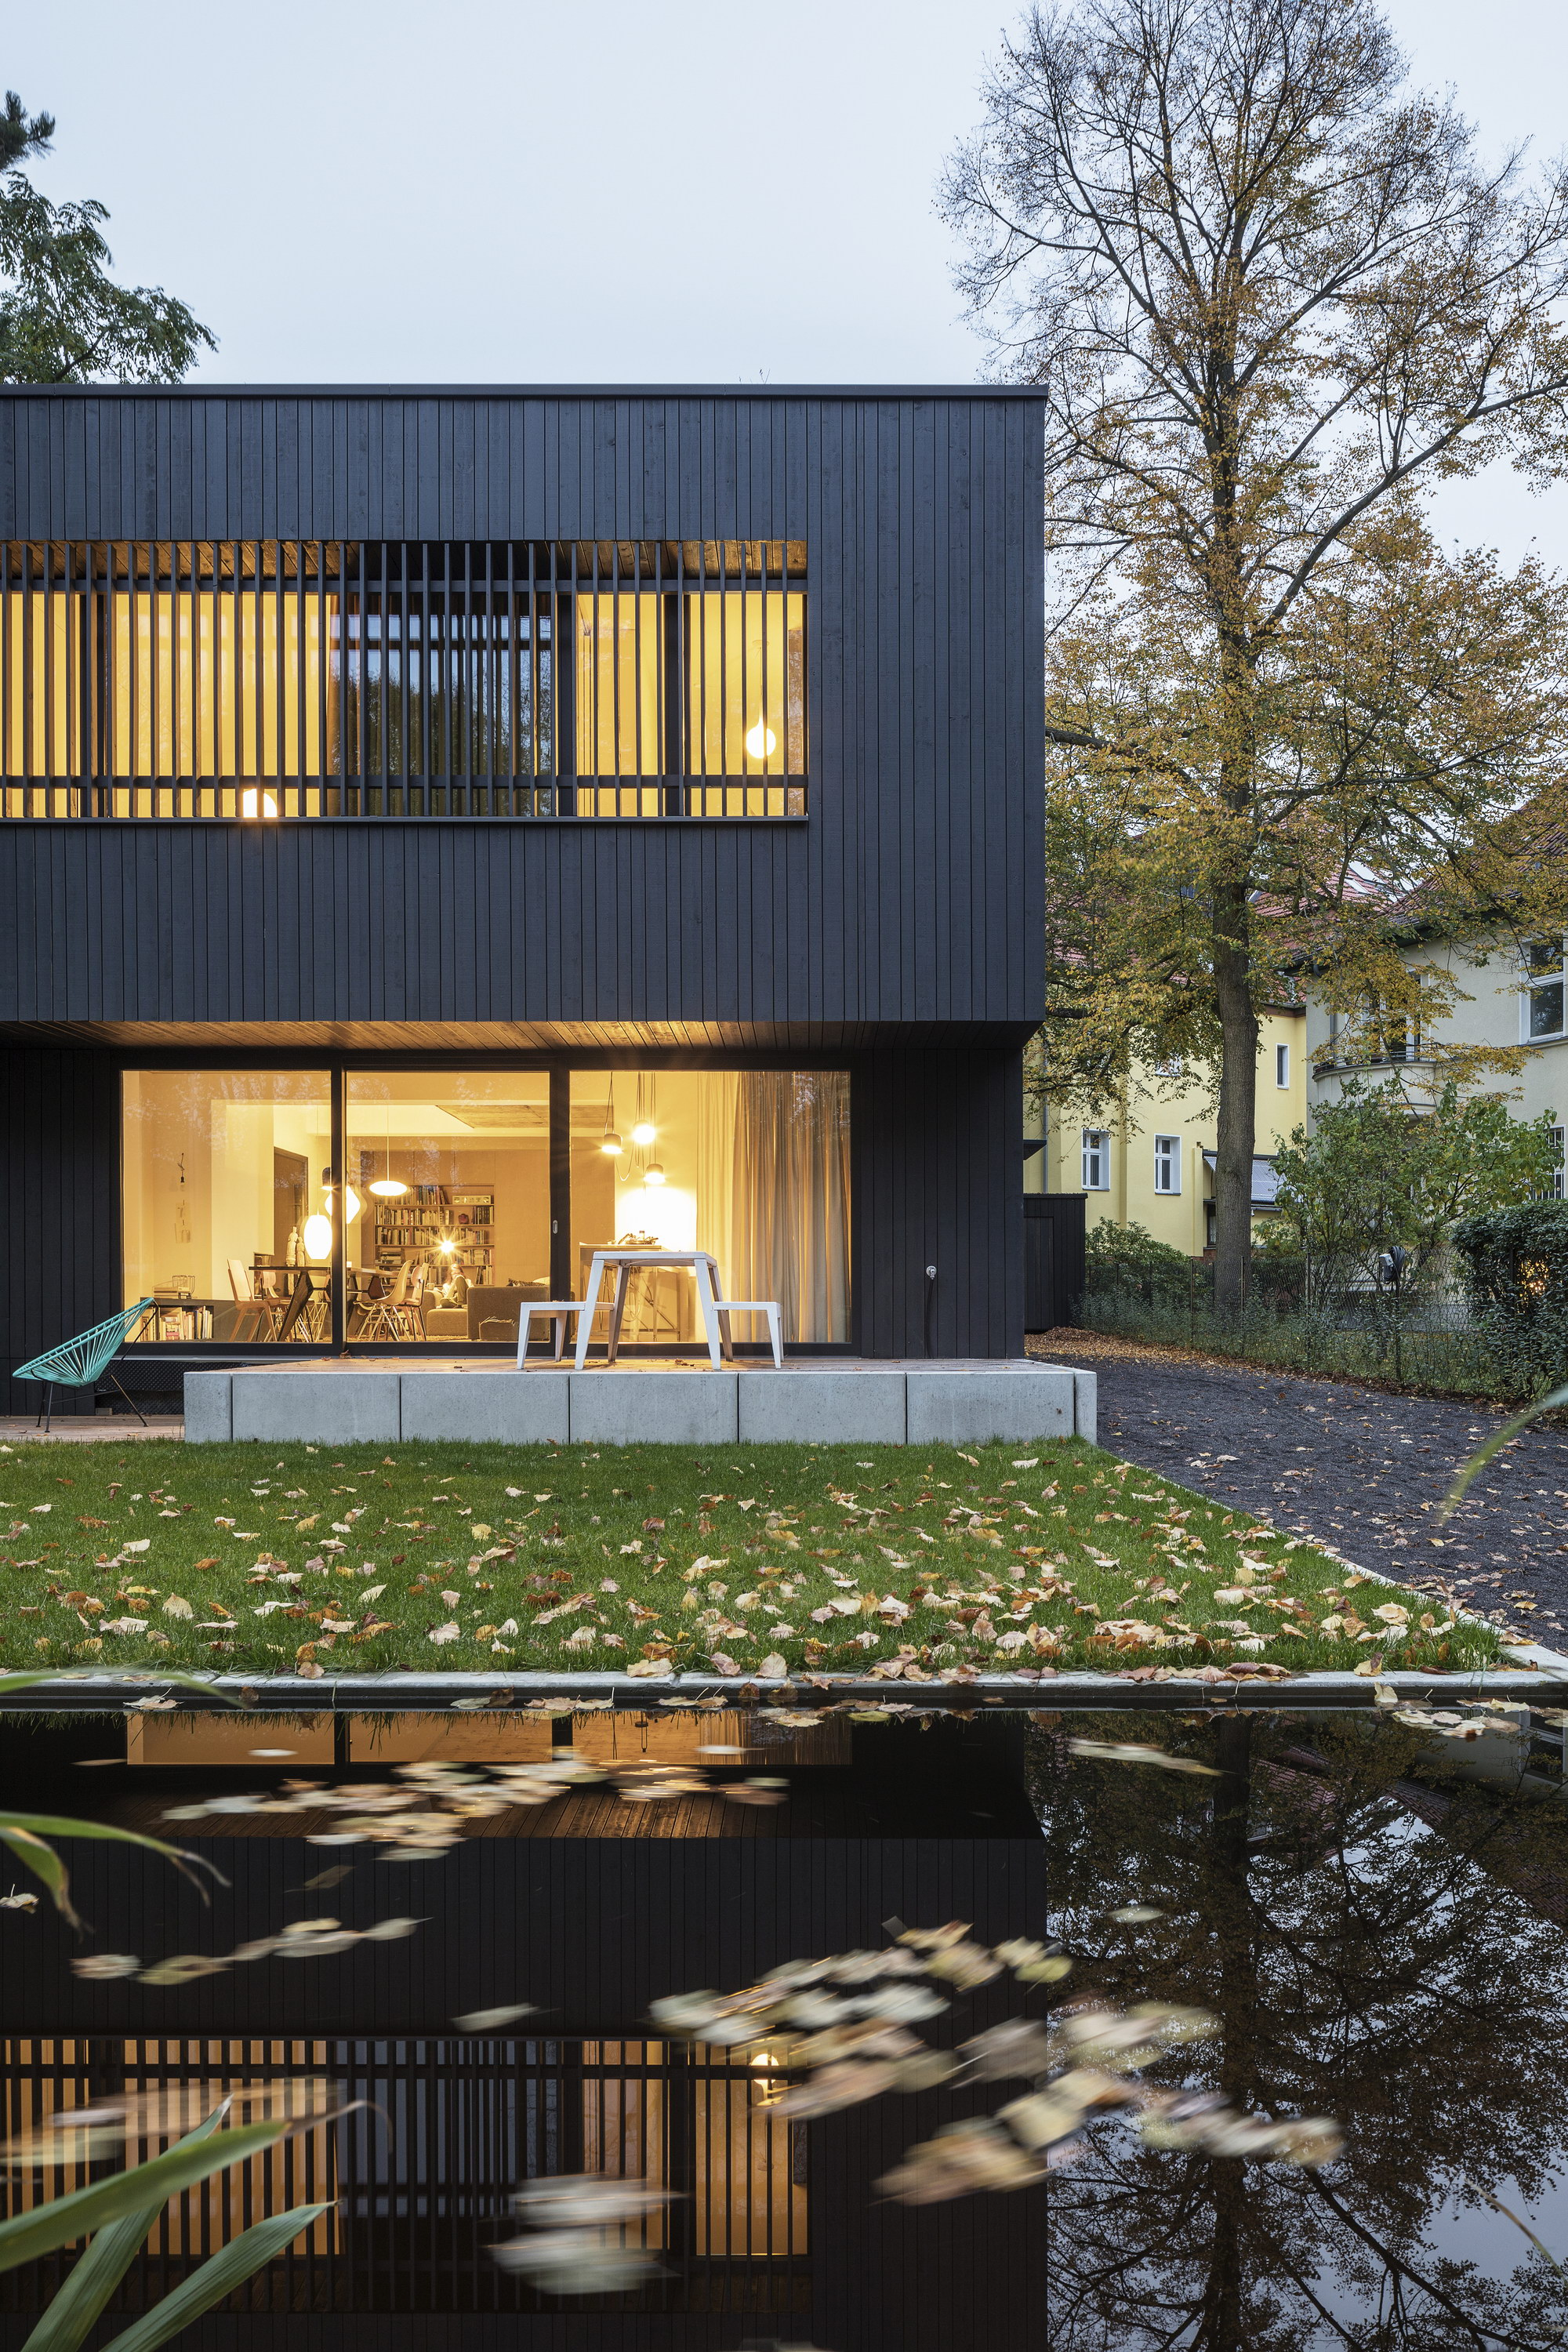 A28 House | SEHW Architektur turned Industrial Building into Home